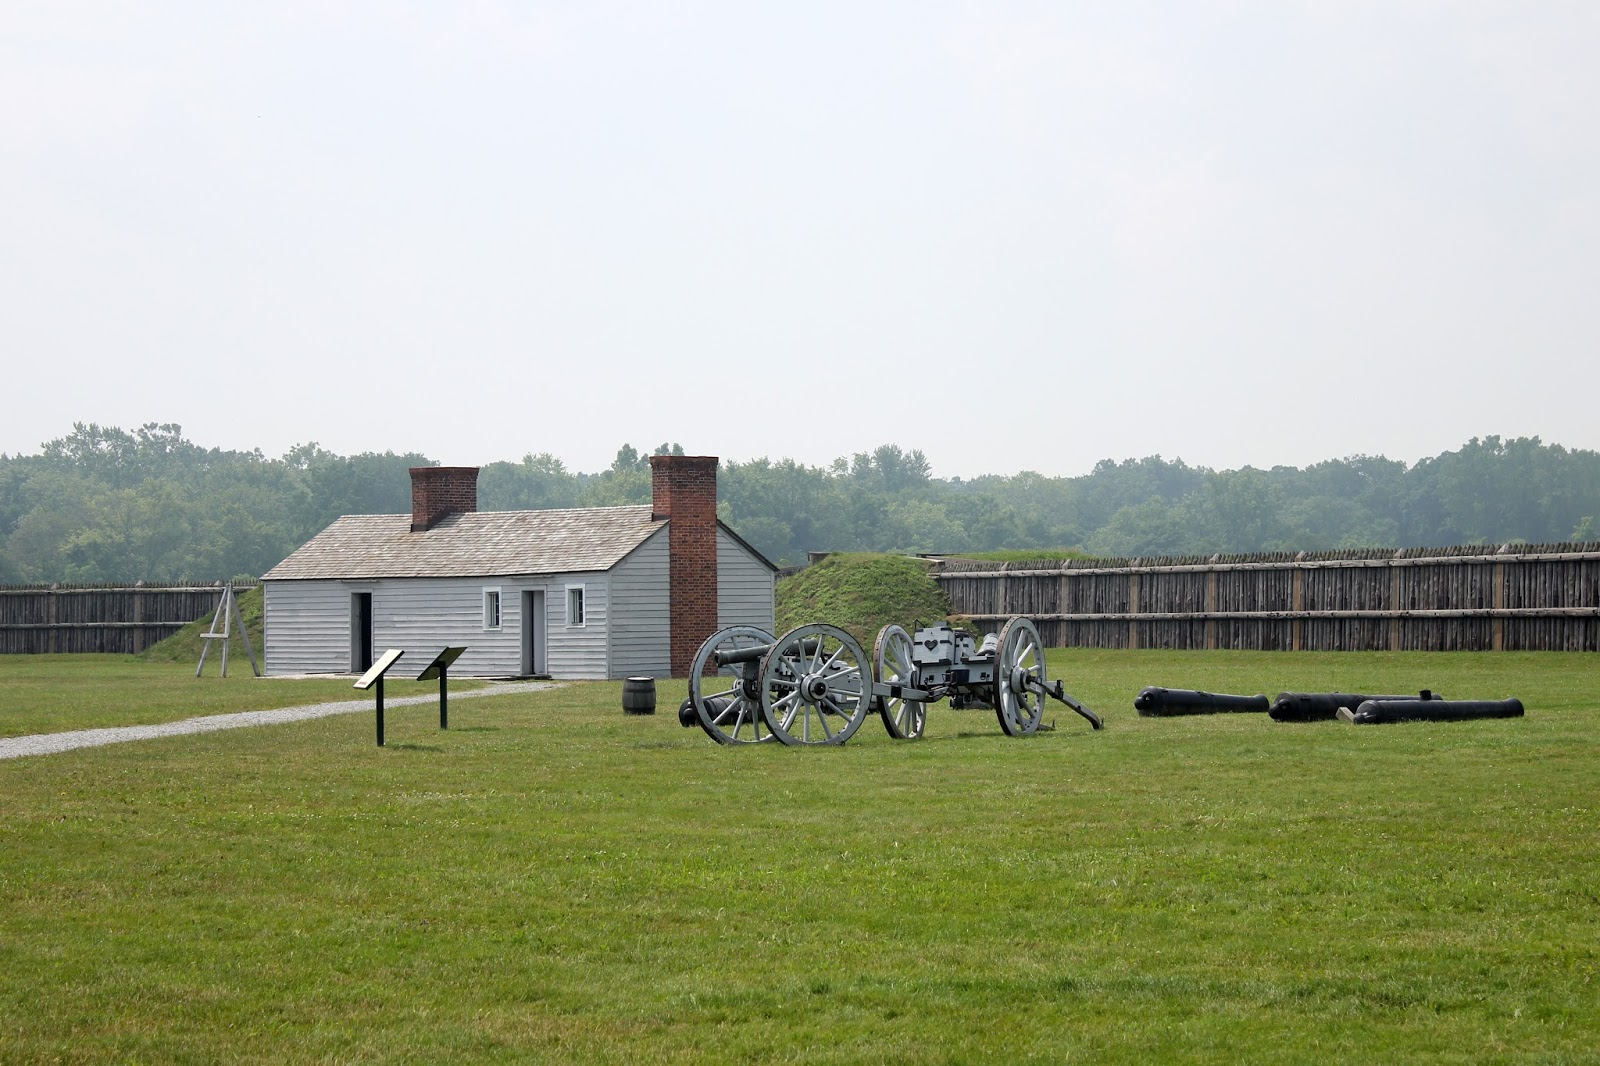 Fort George, The War of 1812